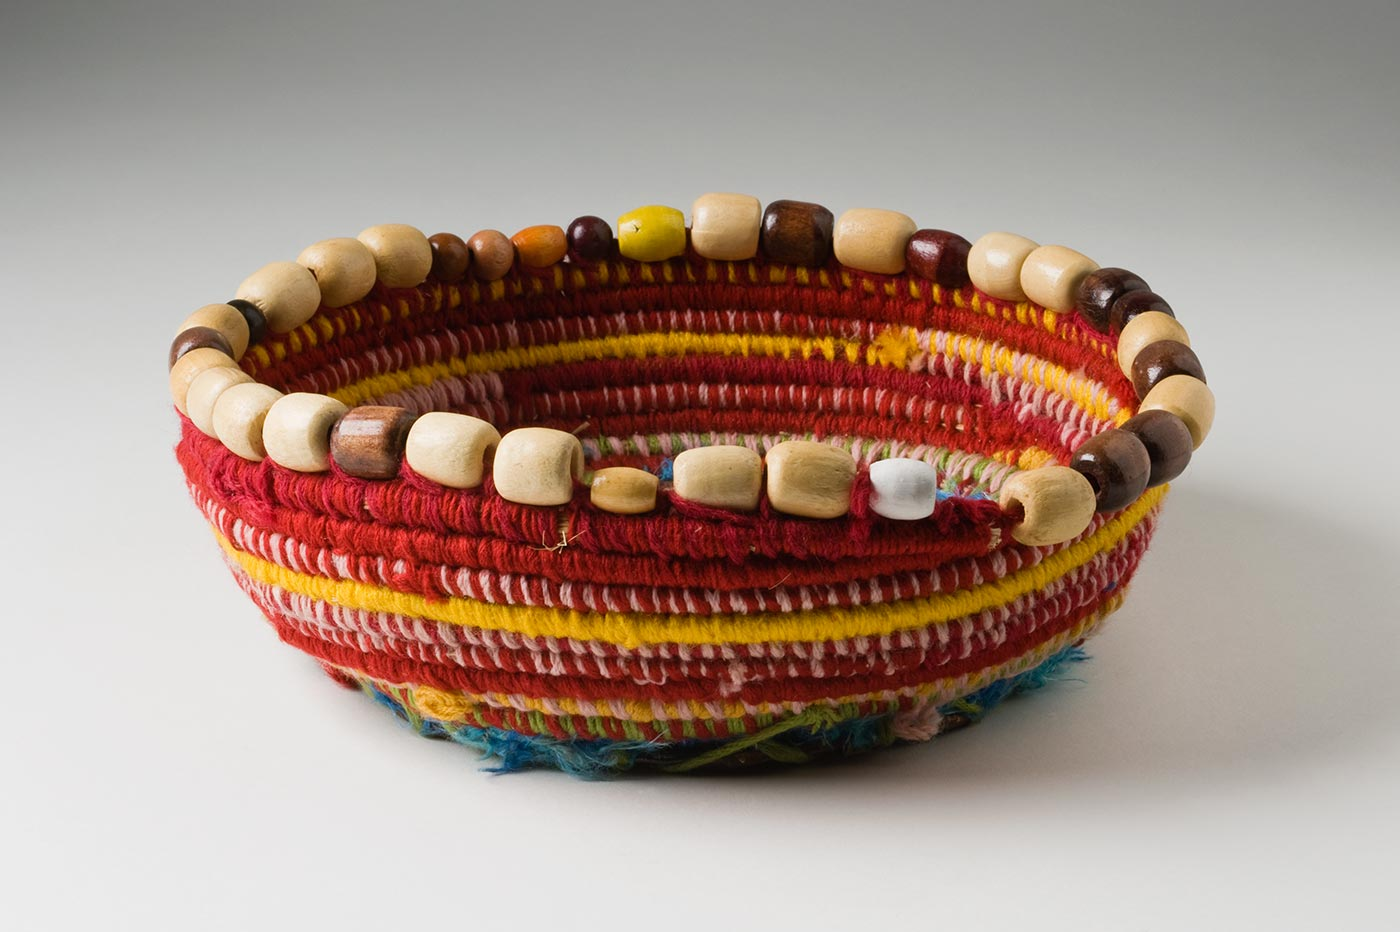 A shallow circular coiled red toned yarn and plant fibre basket with a metal base and bead trim. The base is made of a